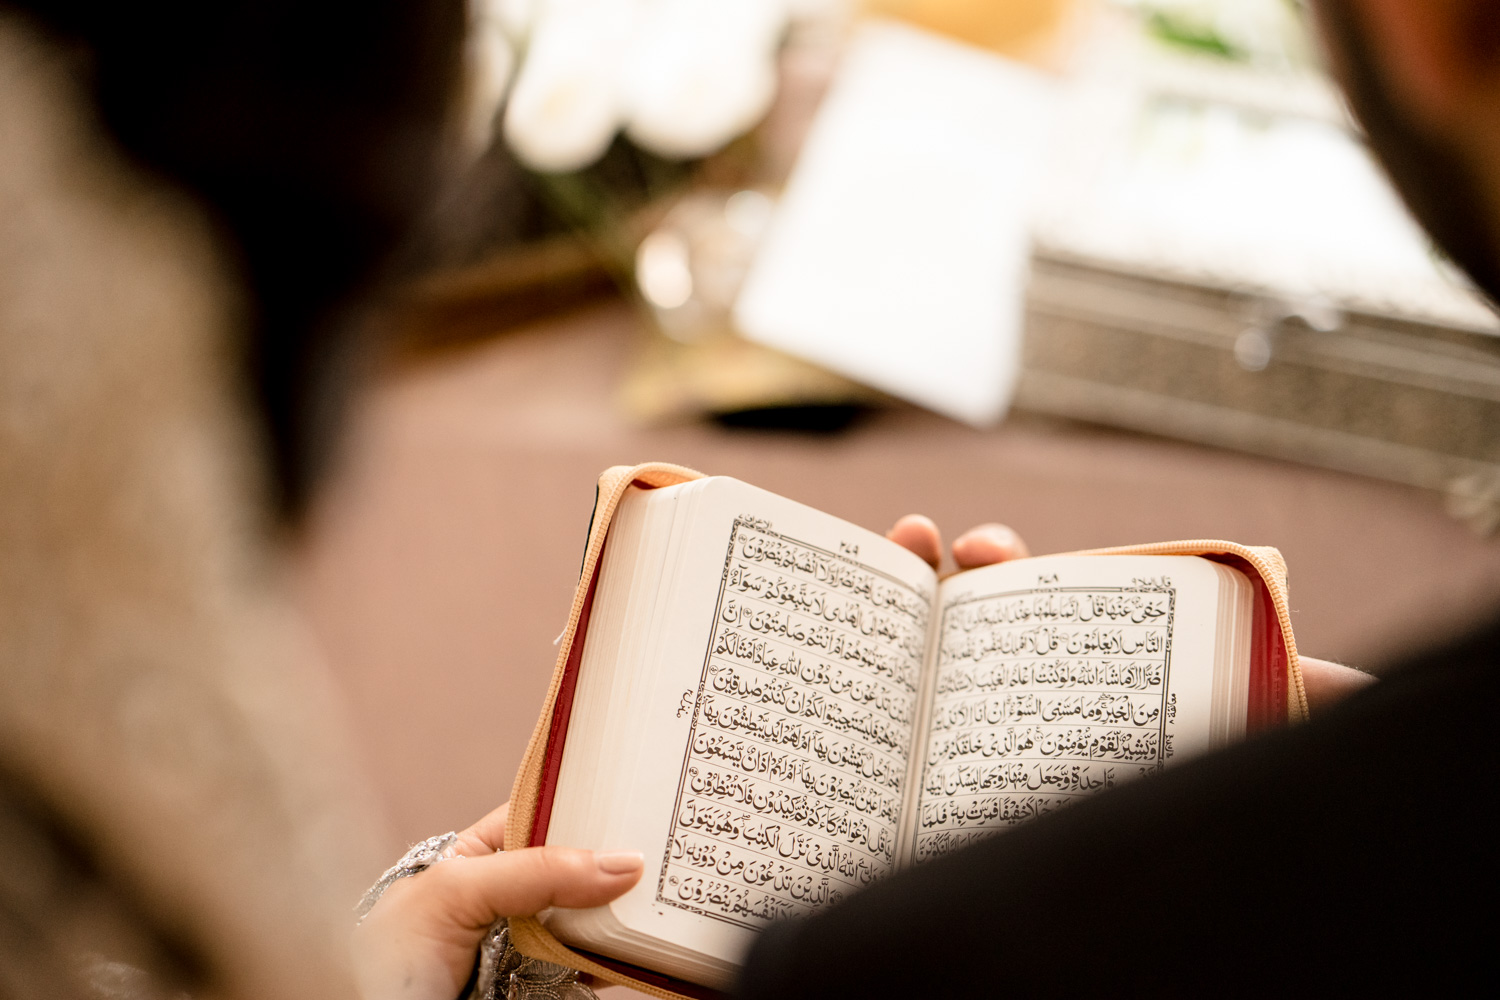 Bride & Groom reading the holy book Quran.